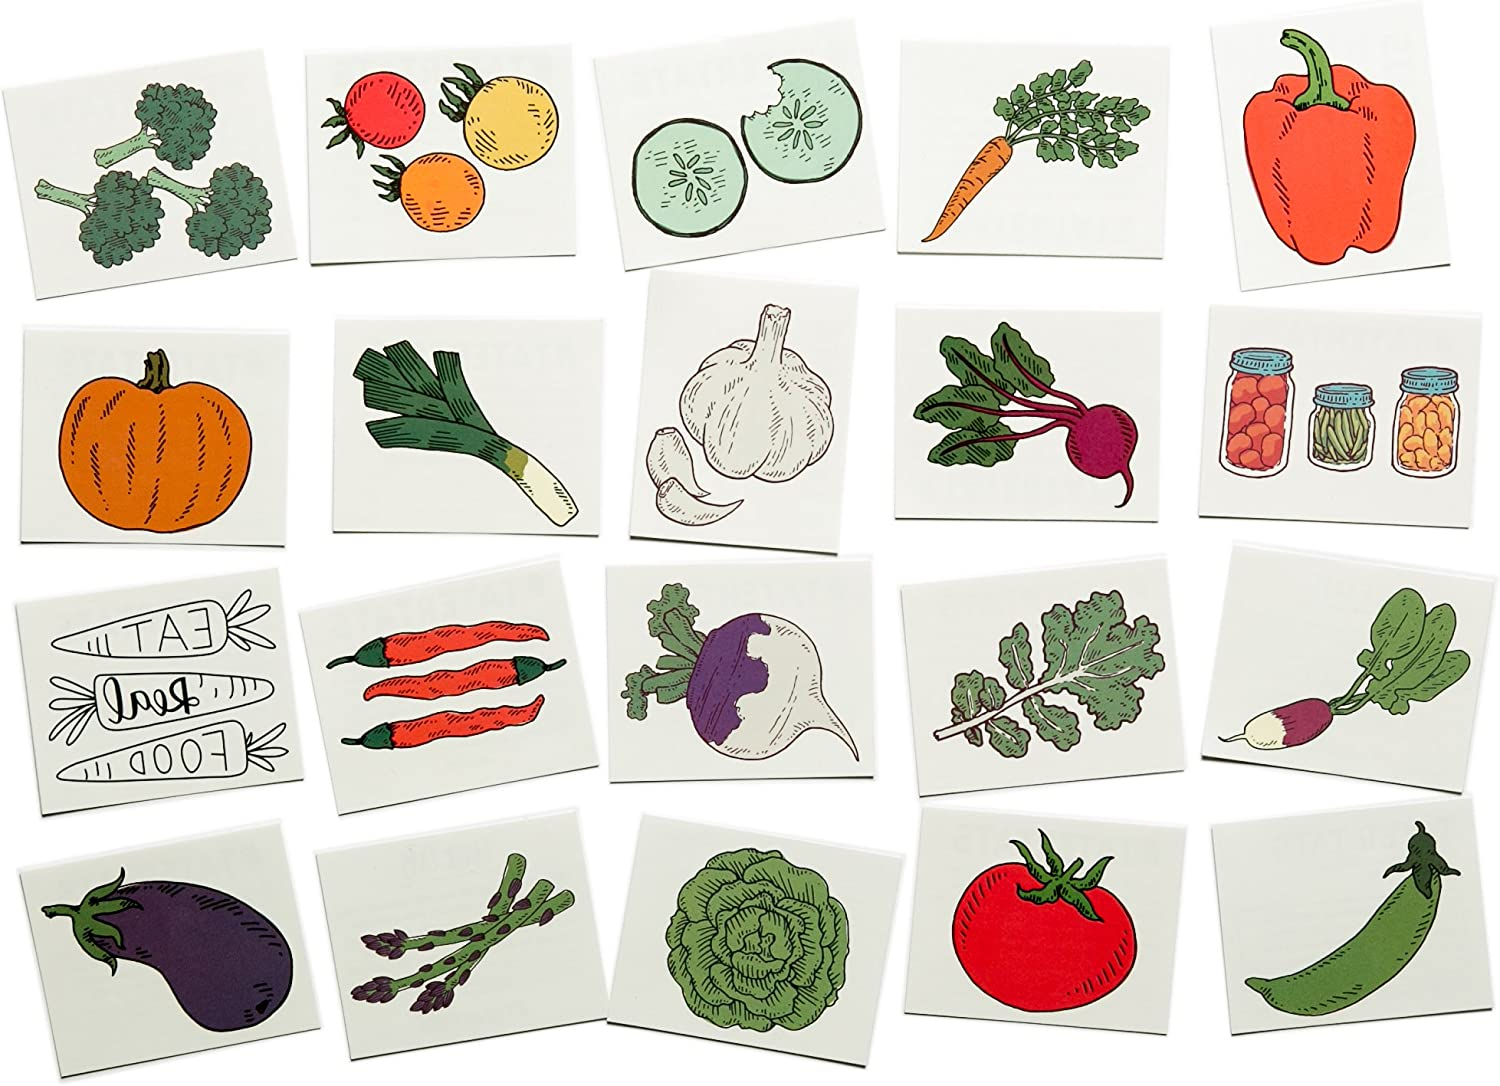 Tater Tats Veggie Lovers Pack: 20 Temporary Vegetable Tattoos